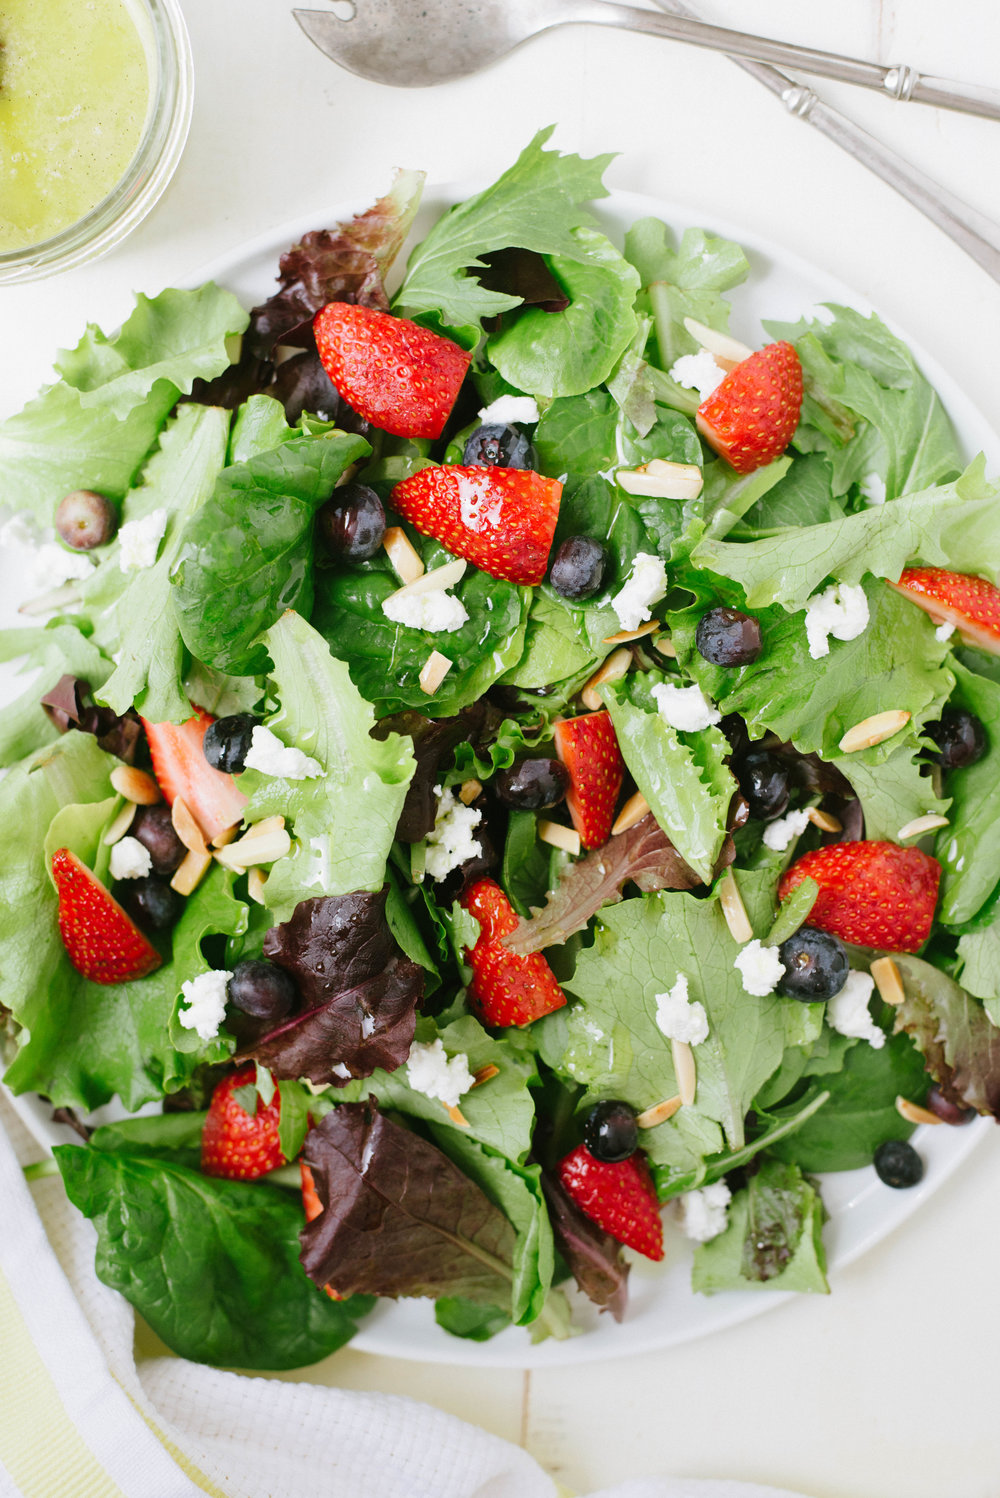 Beautifully simple and packed with flavor, Summer Berry Salad with Vanilla Bean Dressing is elegant, easy, and will take your salad game next level.